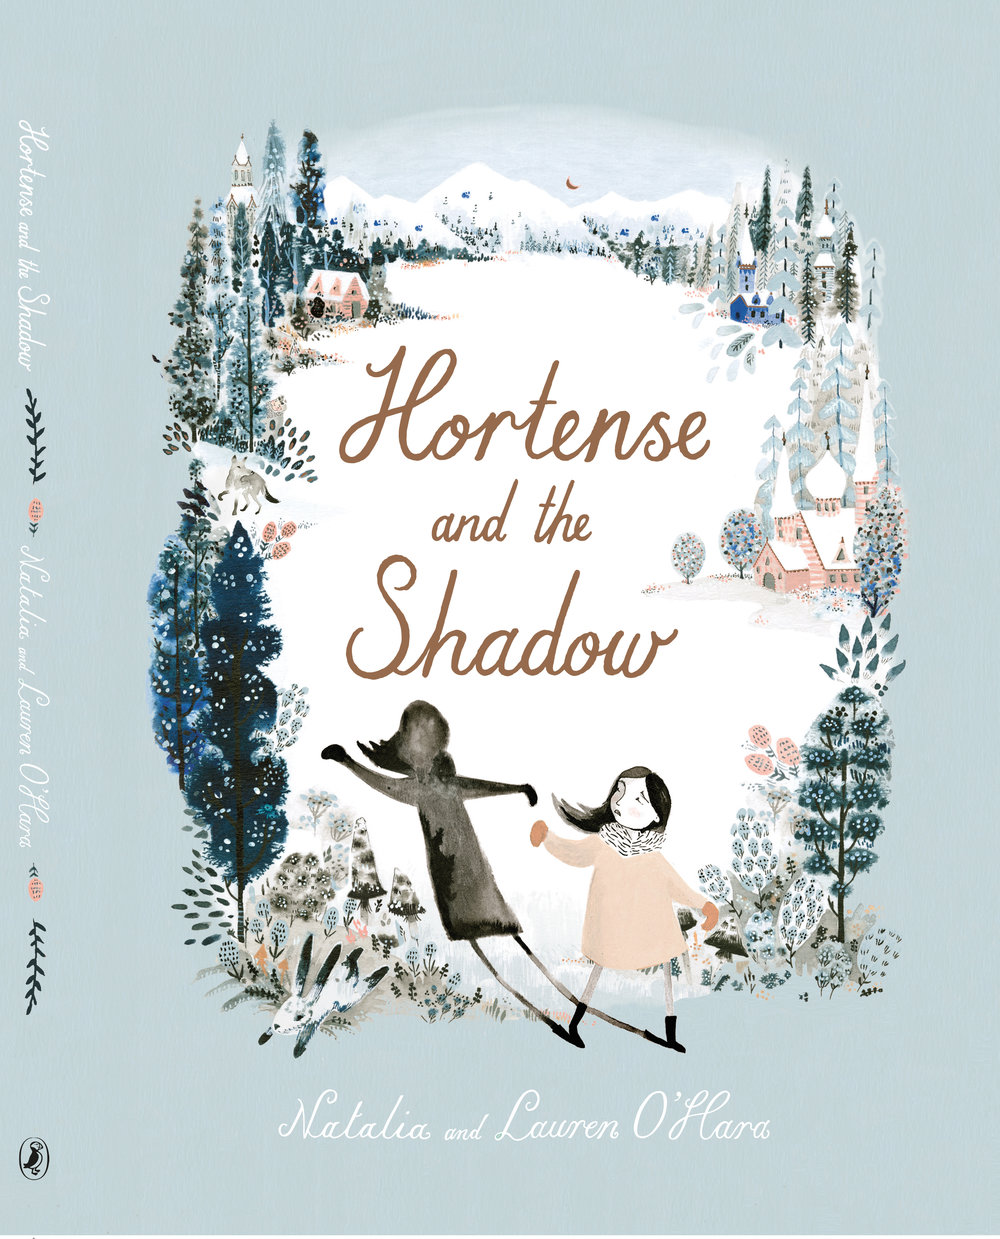 Hortense final cover.jpg